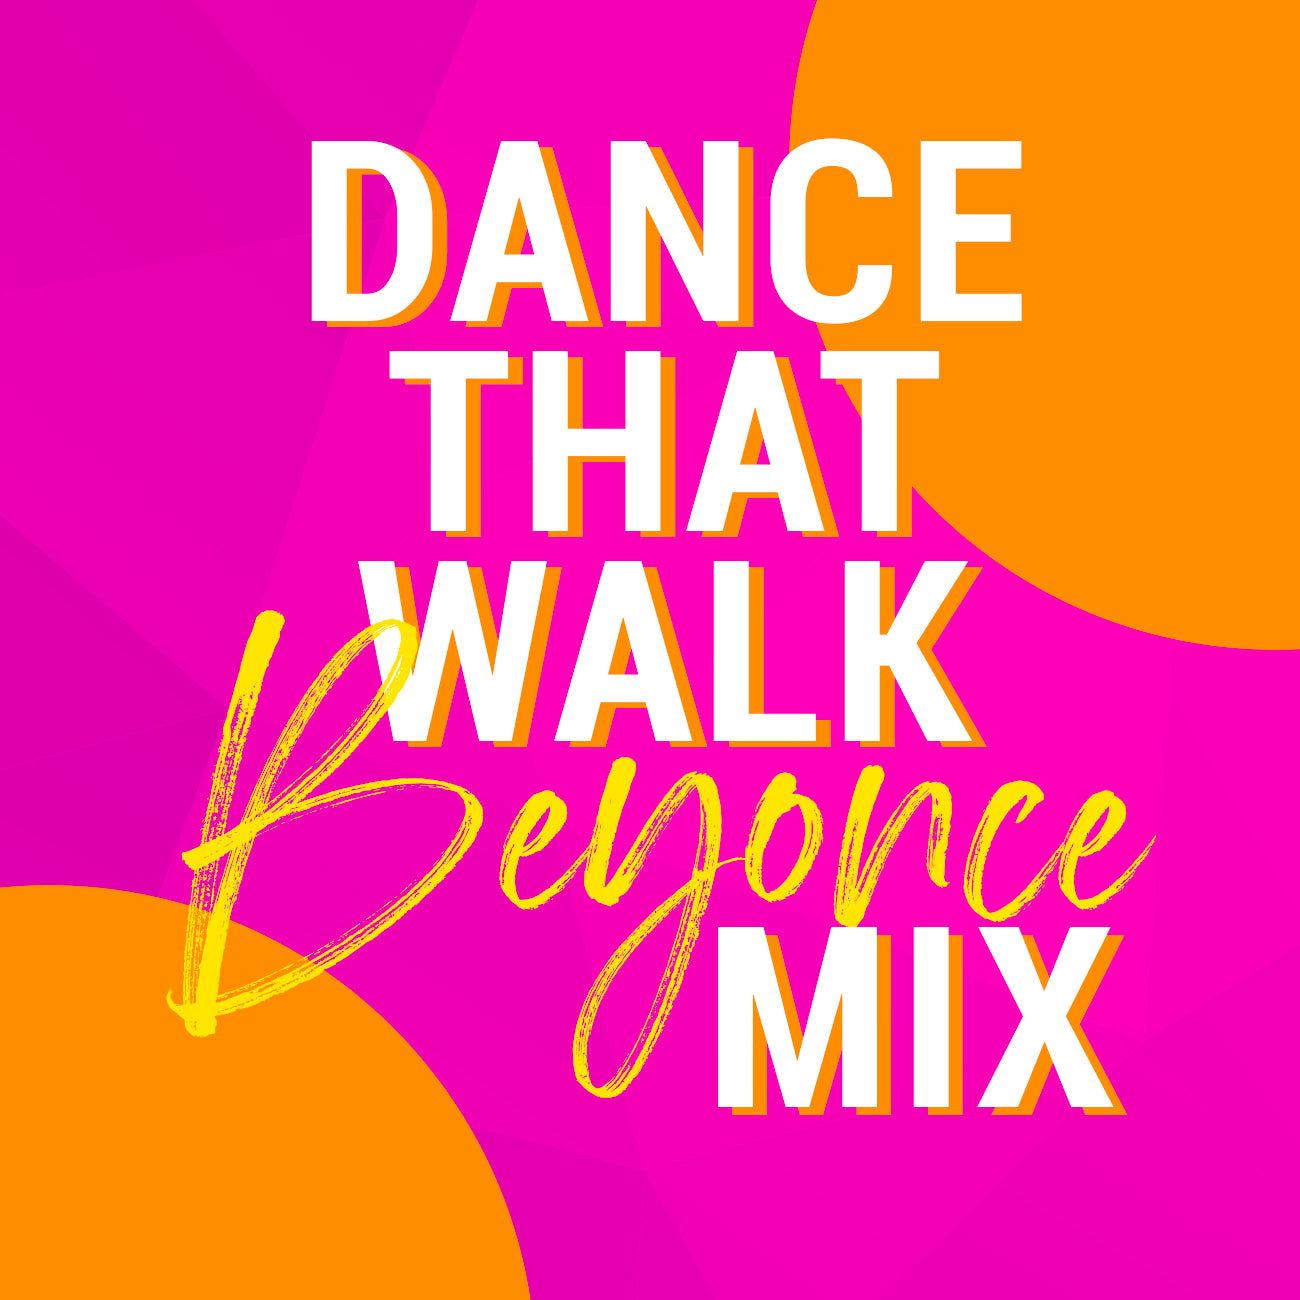 *BEYONCE MIX* DANCE THAT WALK | DANCE FITNESS | CALORIE BLASTING WORKOUT